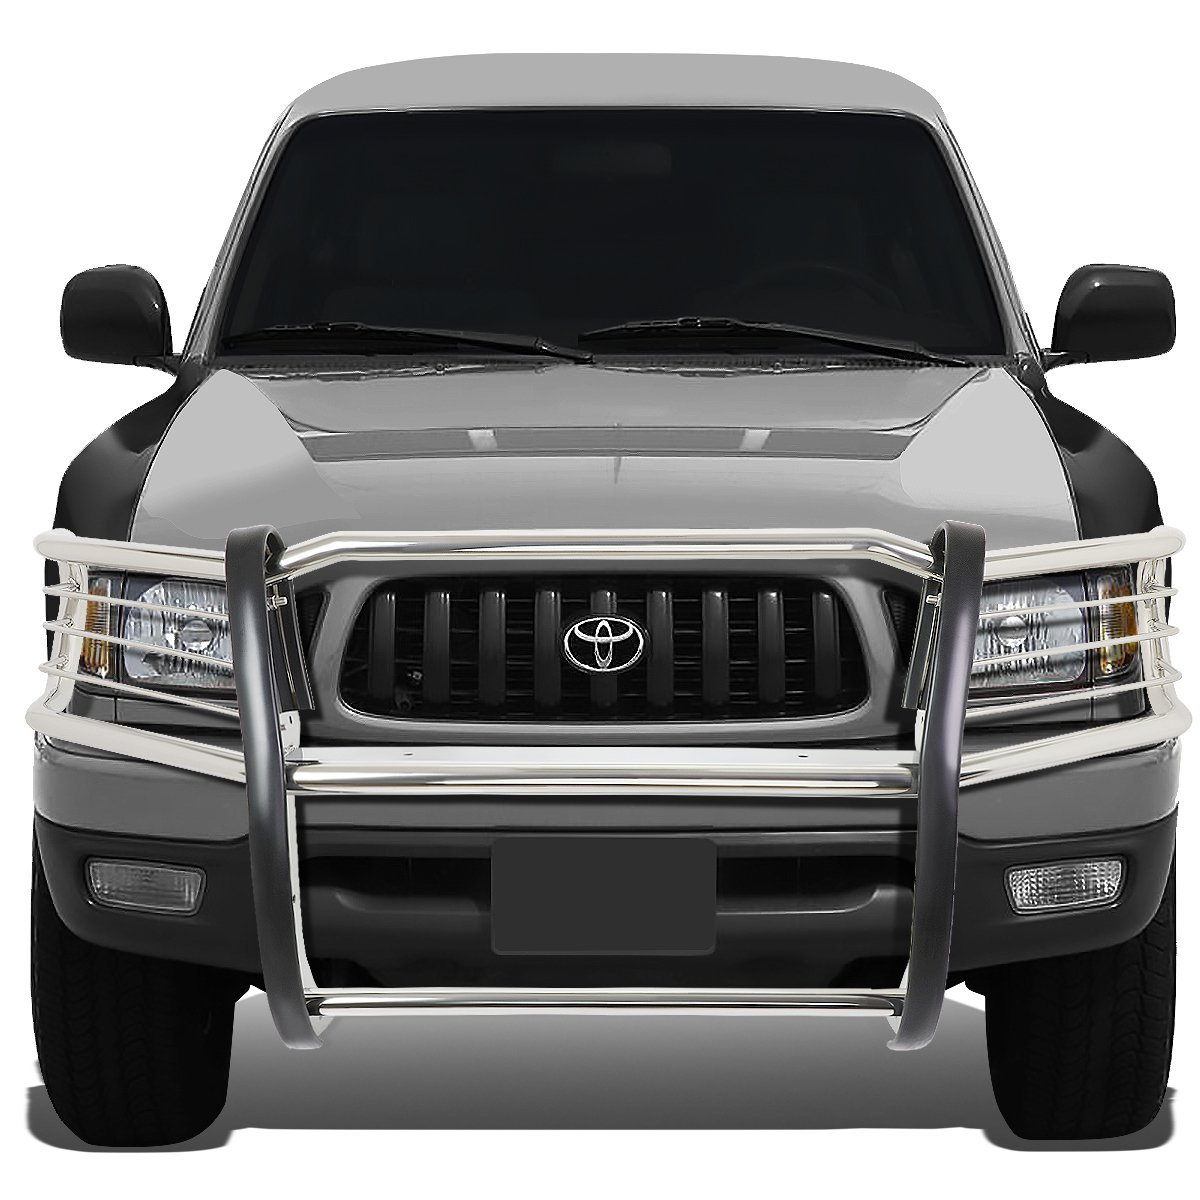 98 04 Toyota Tacoma Pickup Truck Front Bumper Protector